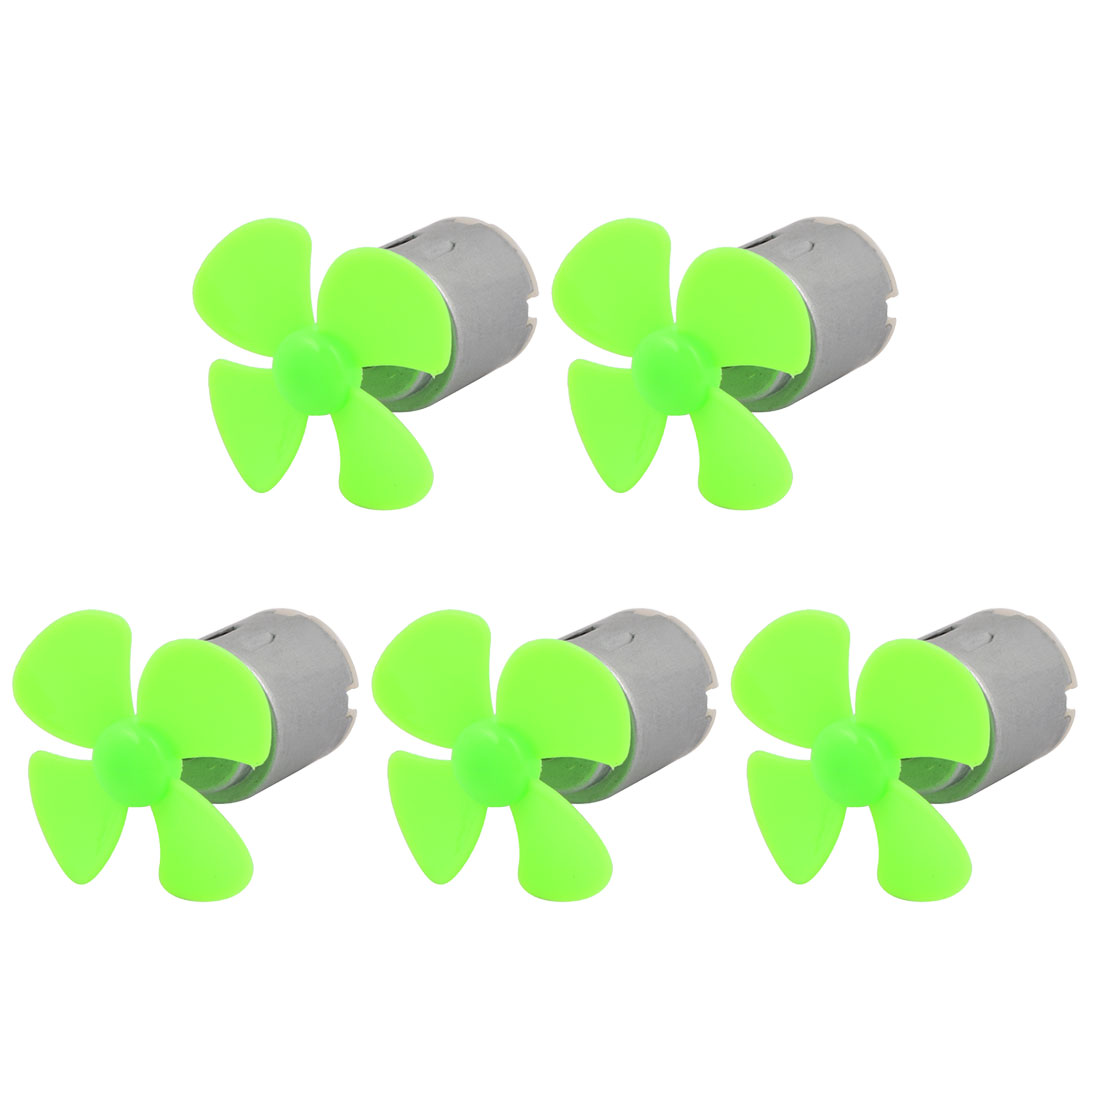 5Pcs DC 5V 6600RPM Large Torque Motor 4-Vane 40mm Dia Propeller Green for RC Model